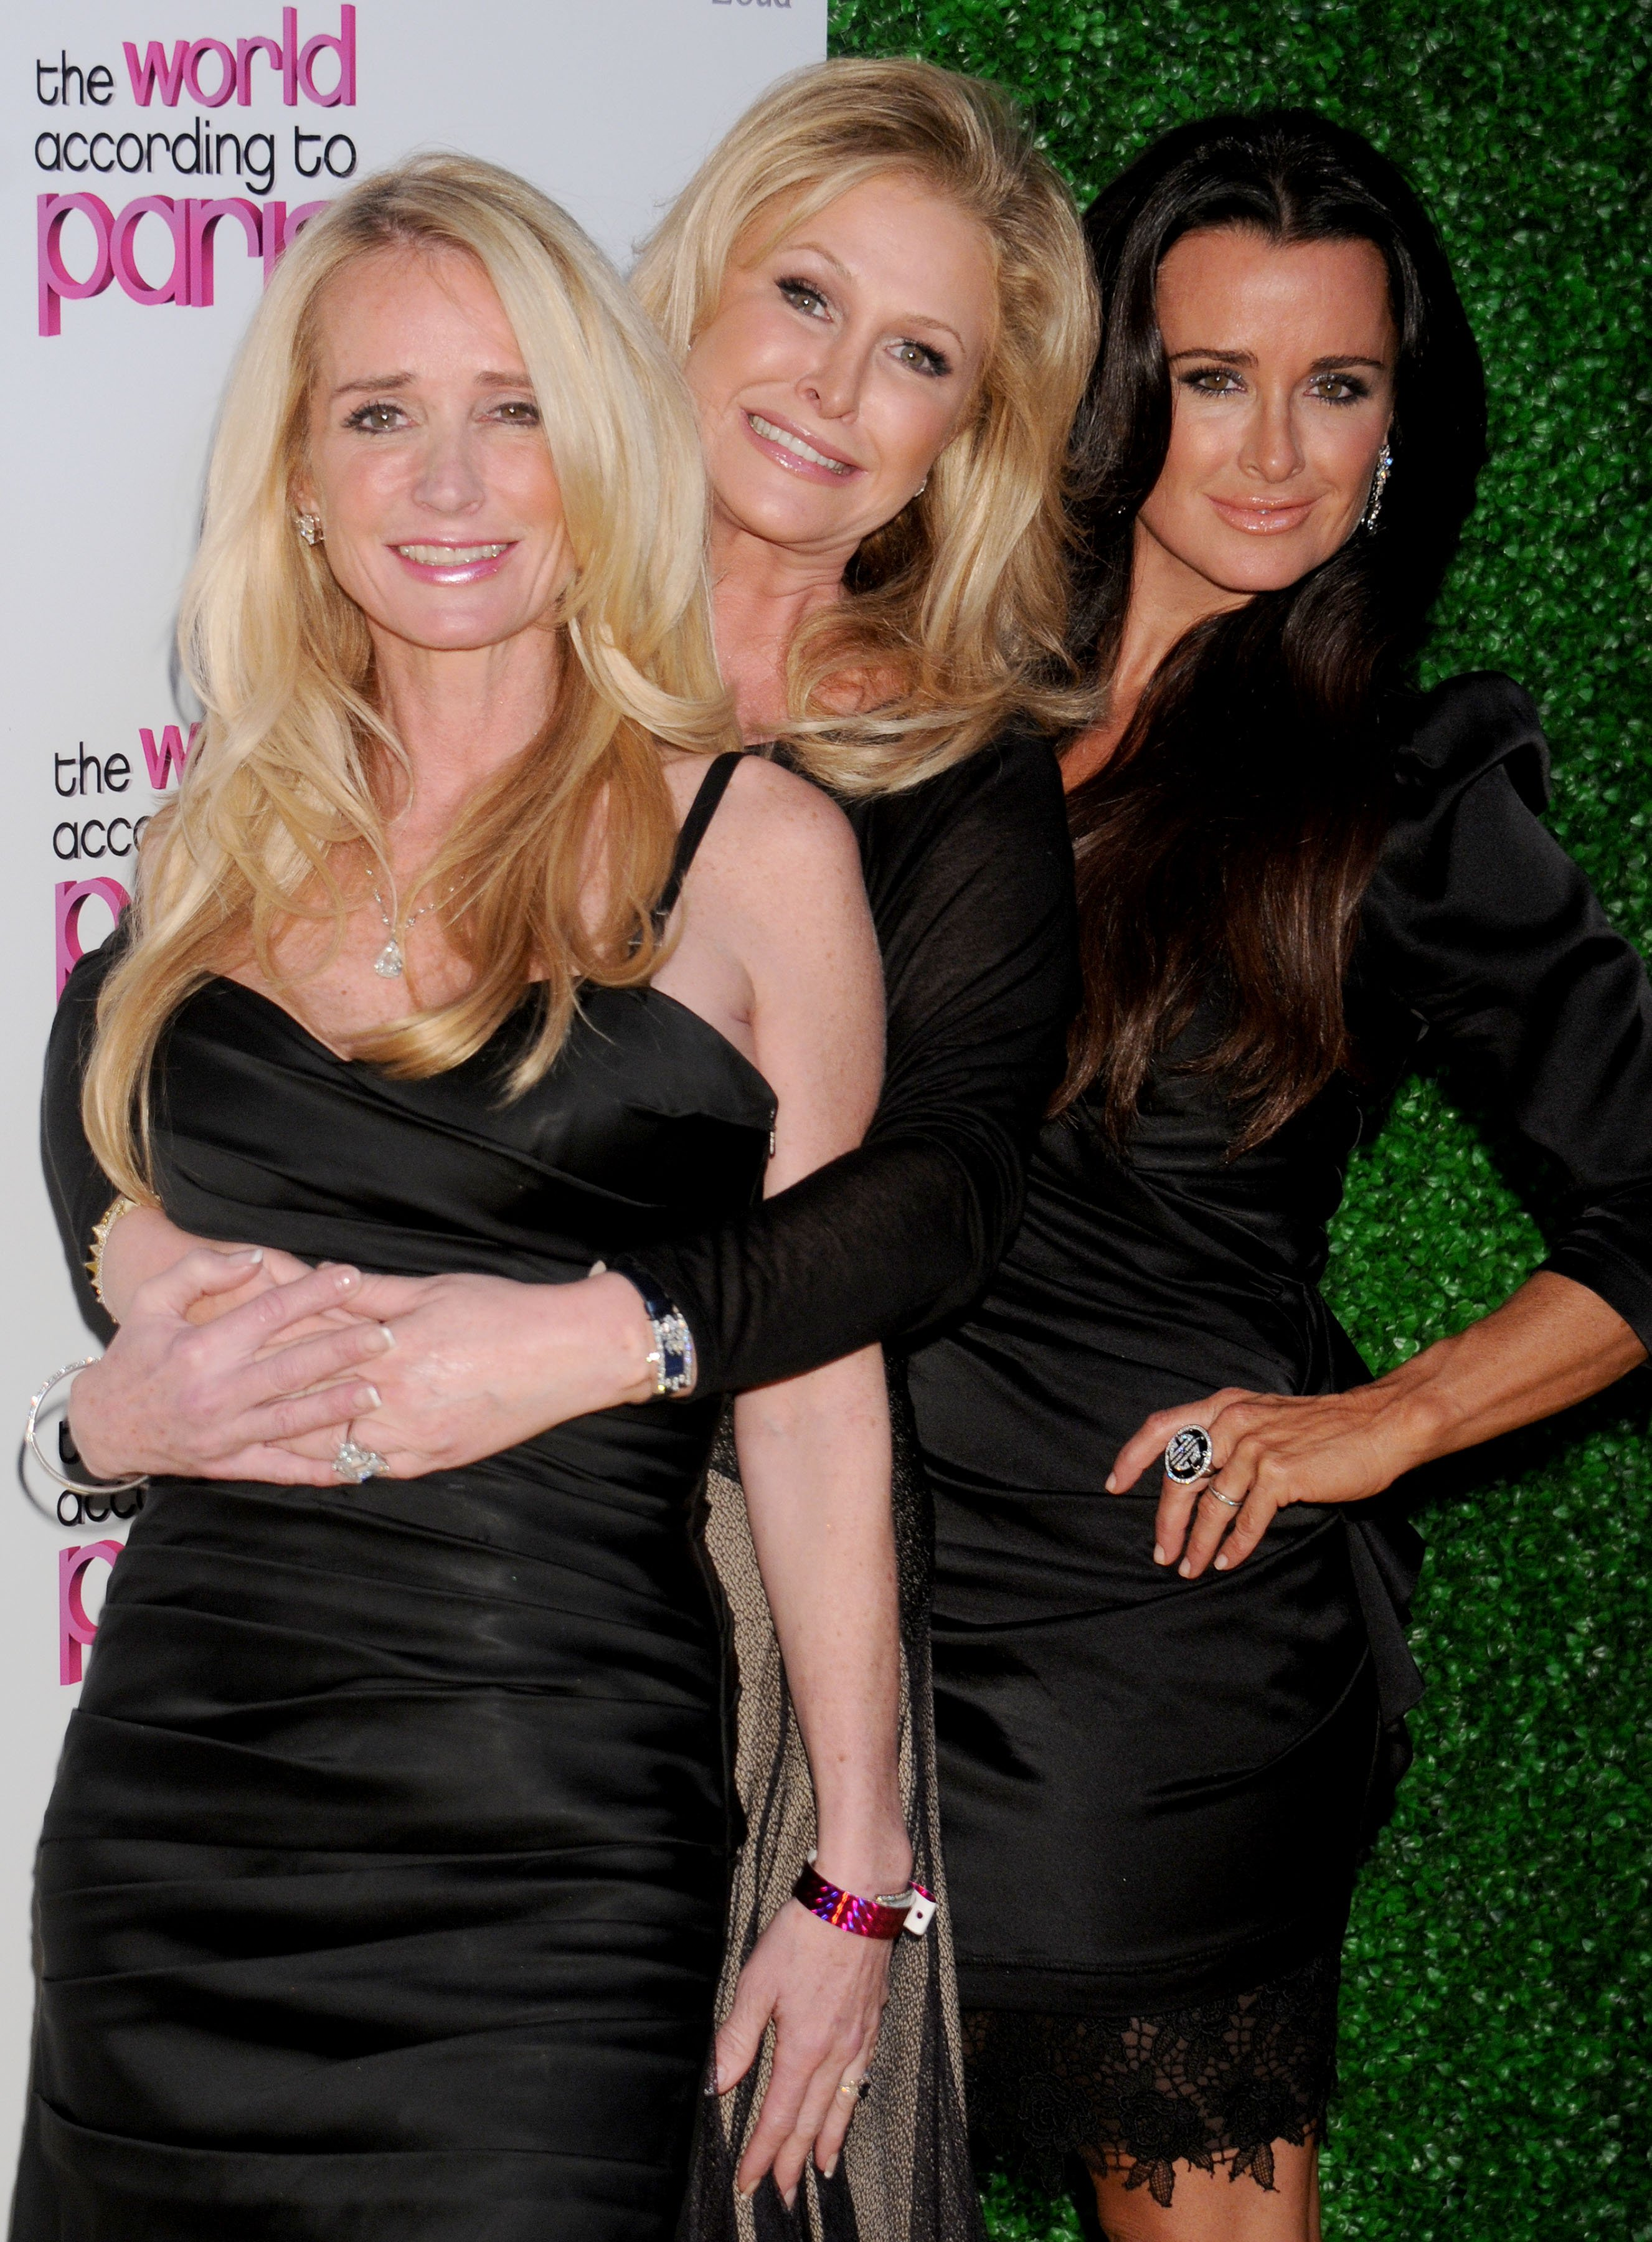 """Kim Richards, Kathy Hilton, and Kyle Richards at the """"The World According to Paris"""" Premiere Party in Hollywood, 2011"""